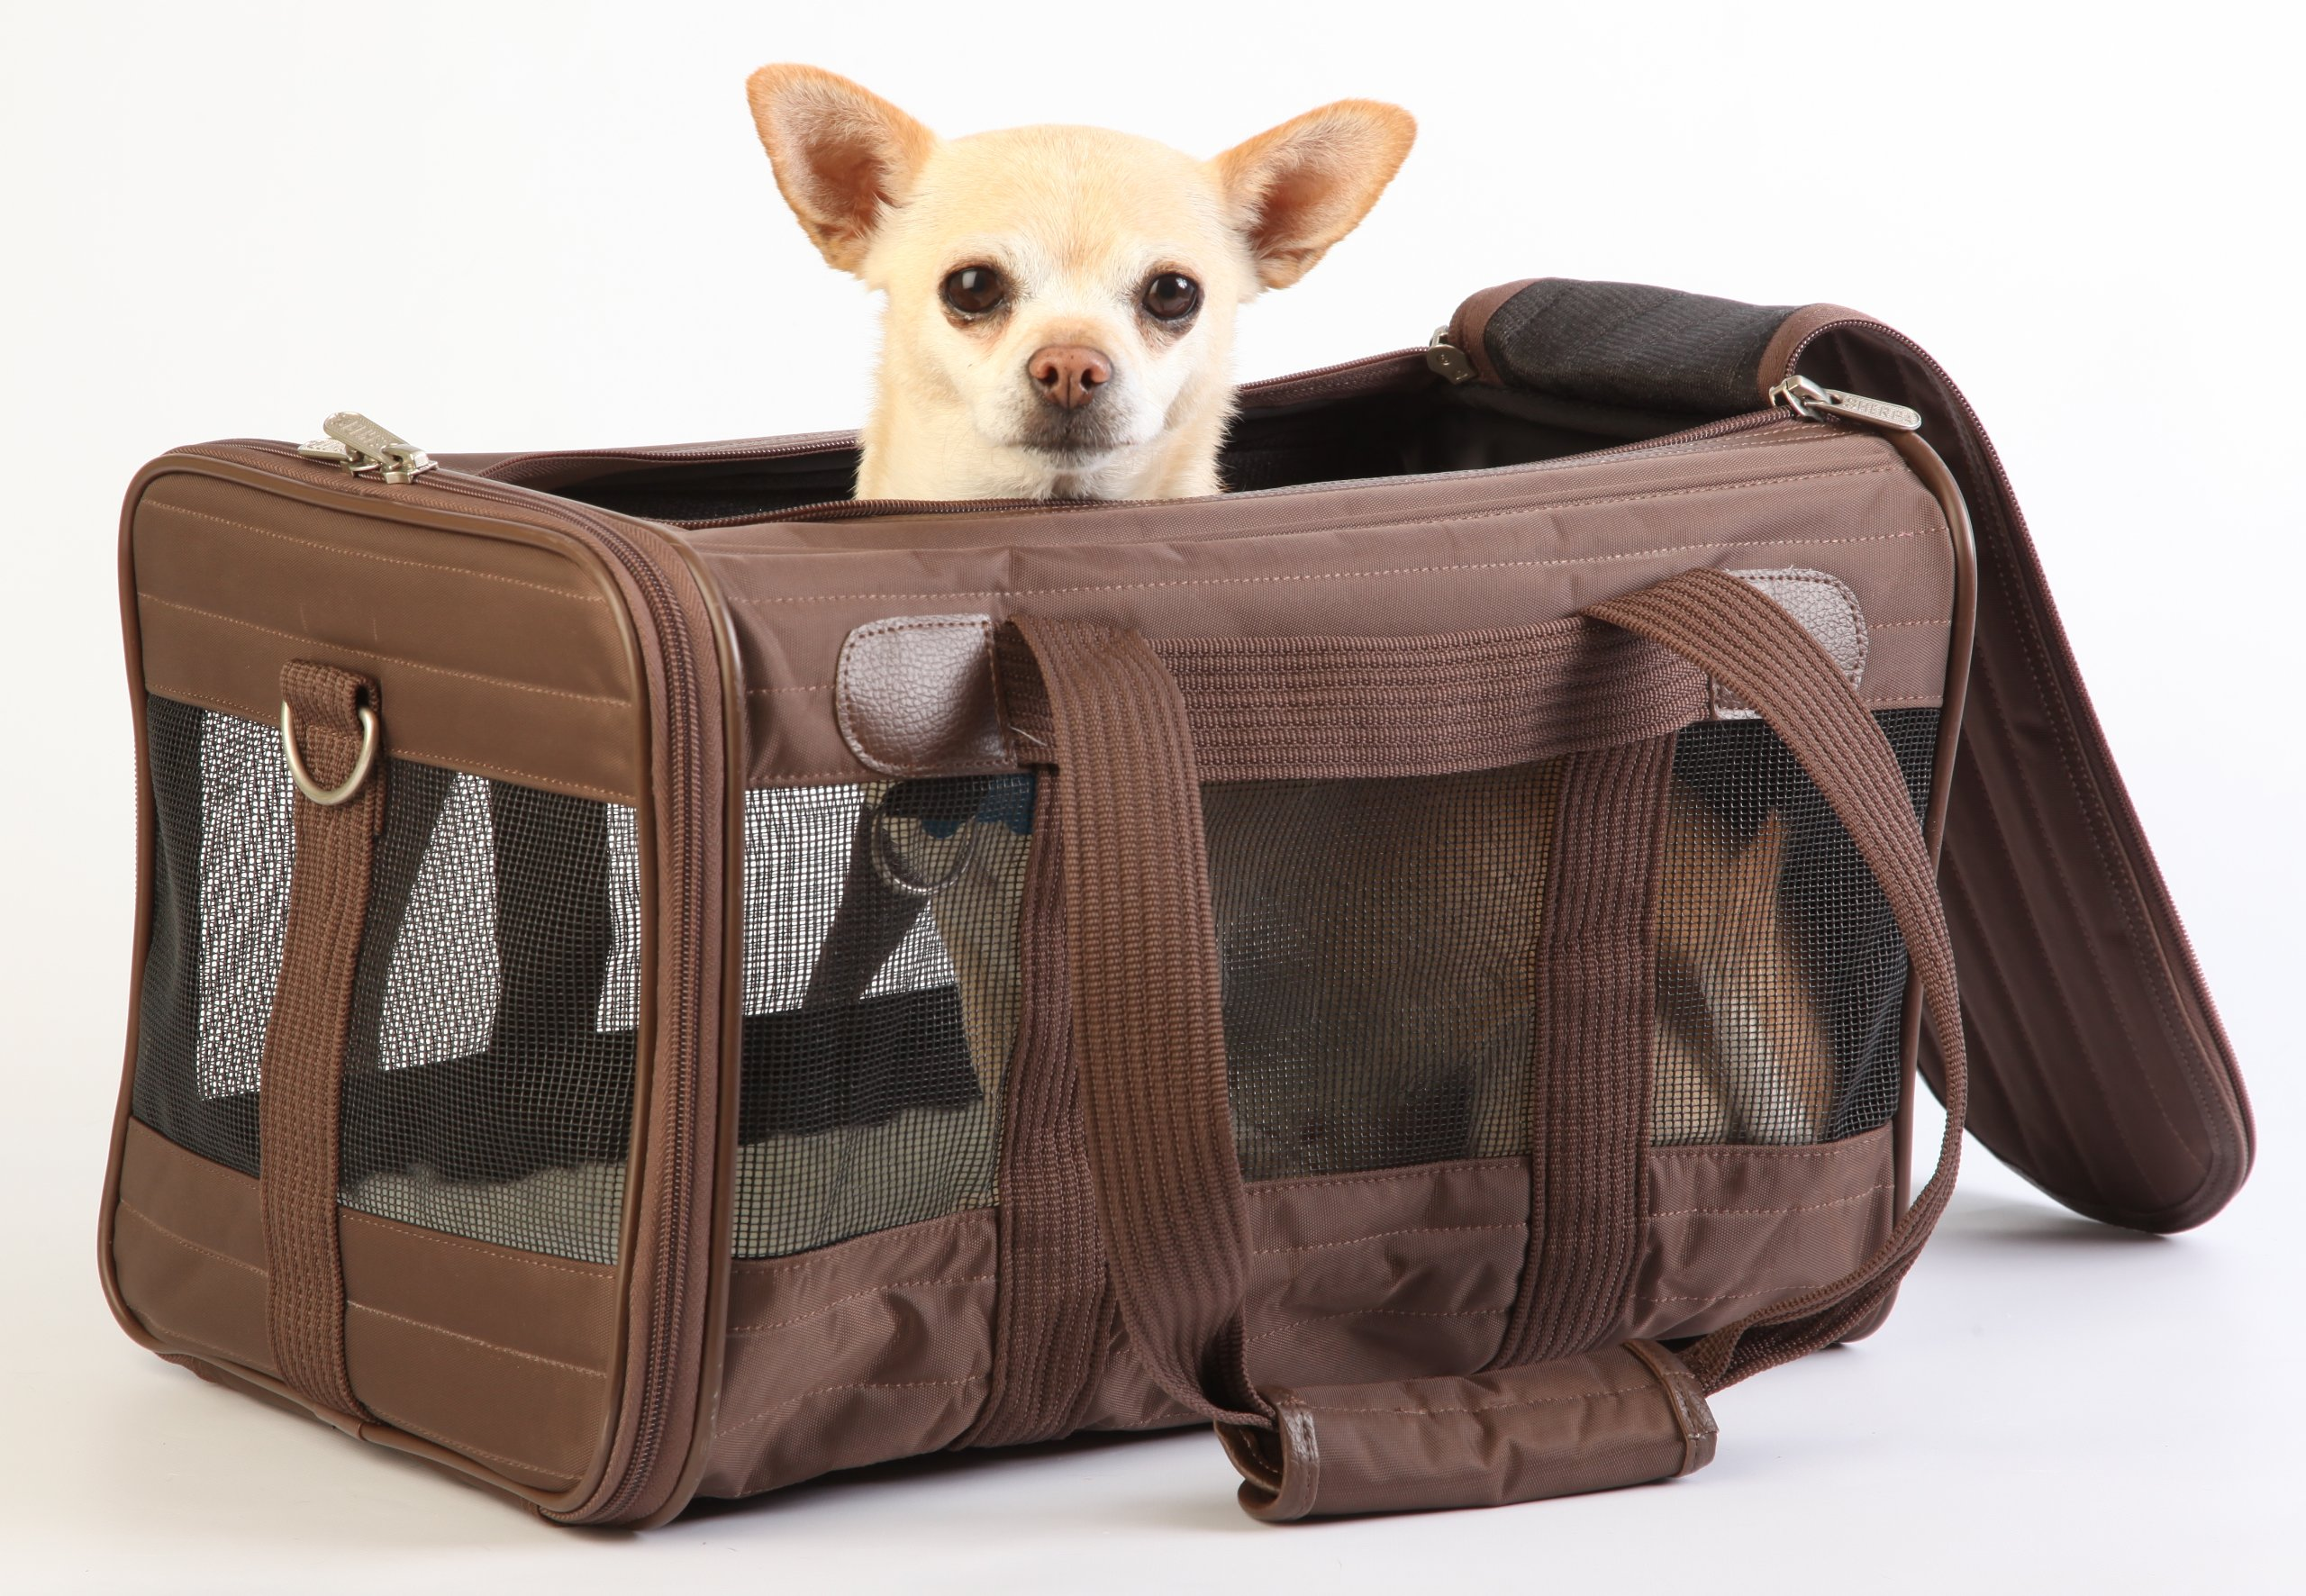 Sherpa Travel Original Deluxe Airline Approved Pet Carrier Small, Brown by Sherpa (Image #4)